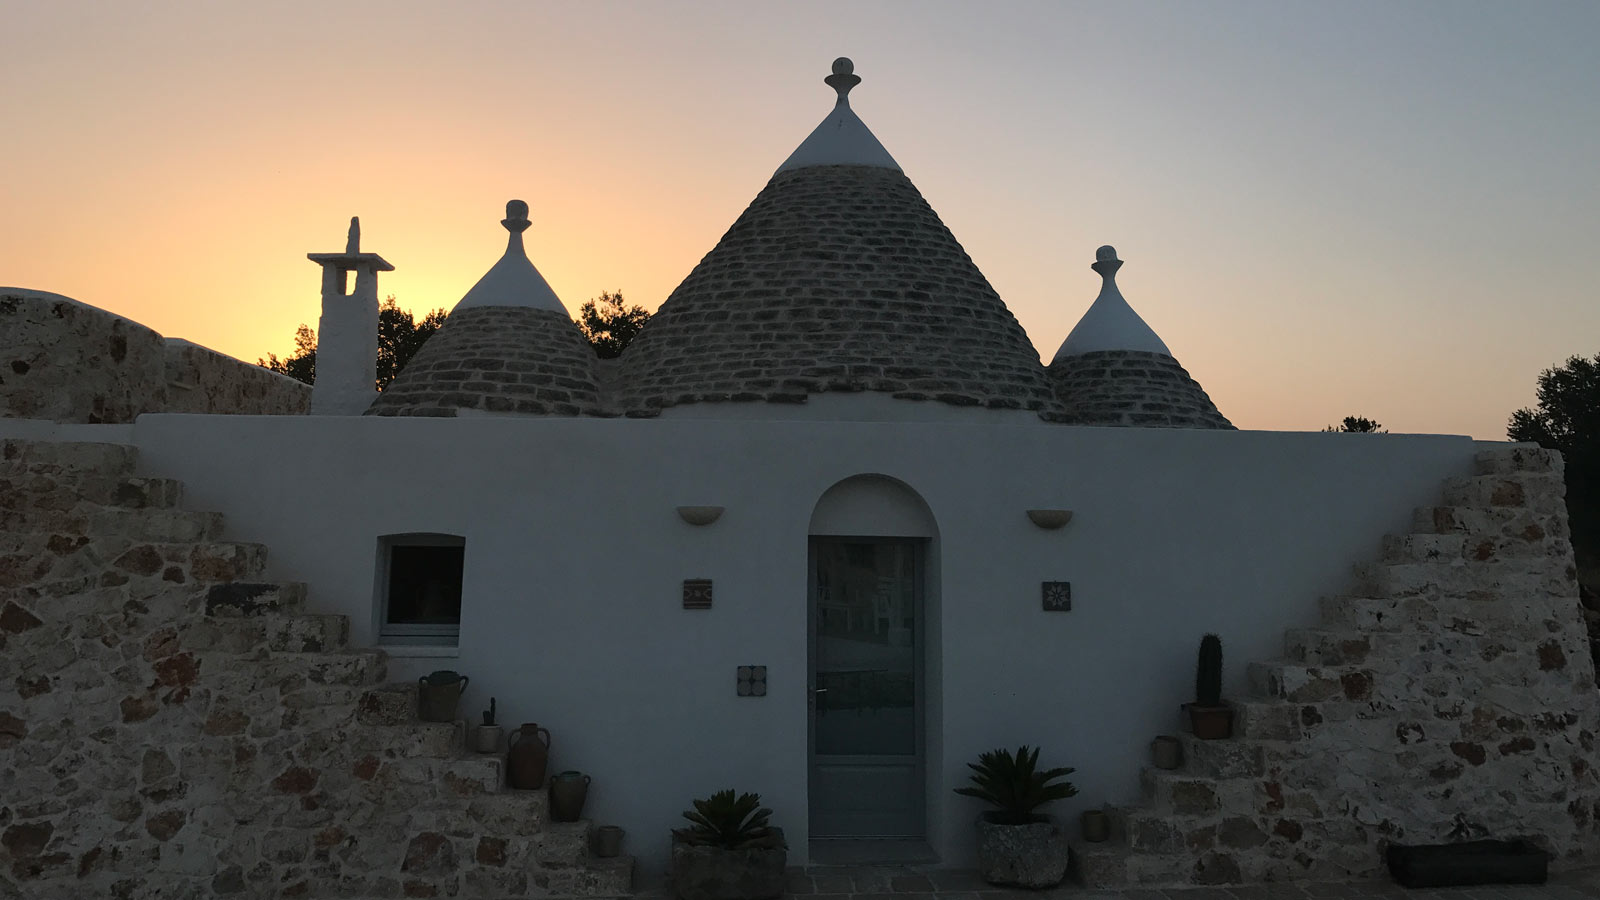 Luxury 6 bedroom holiday accommodation sleeps 12 in Puglia